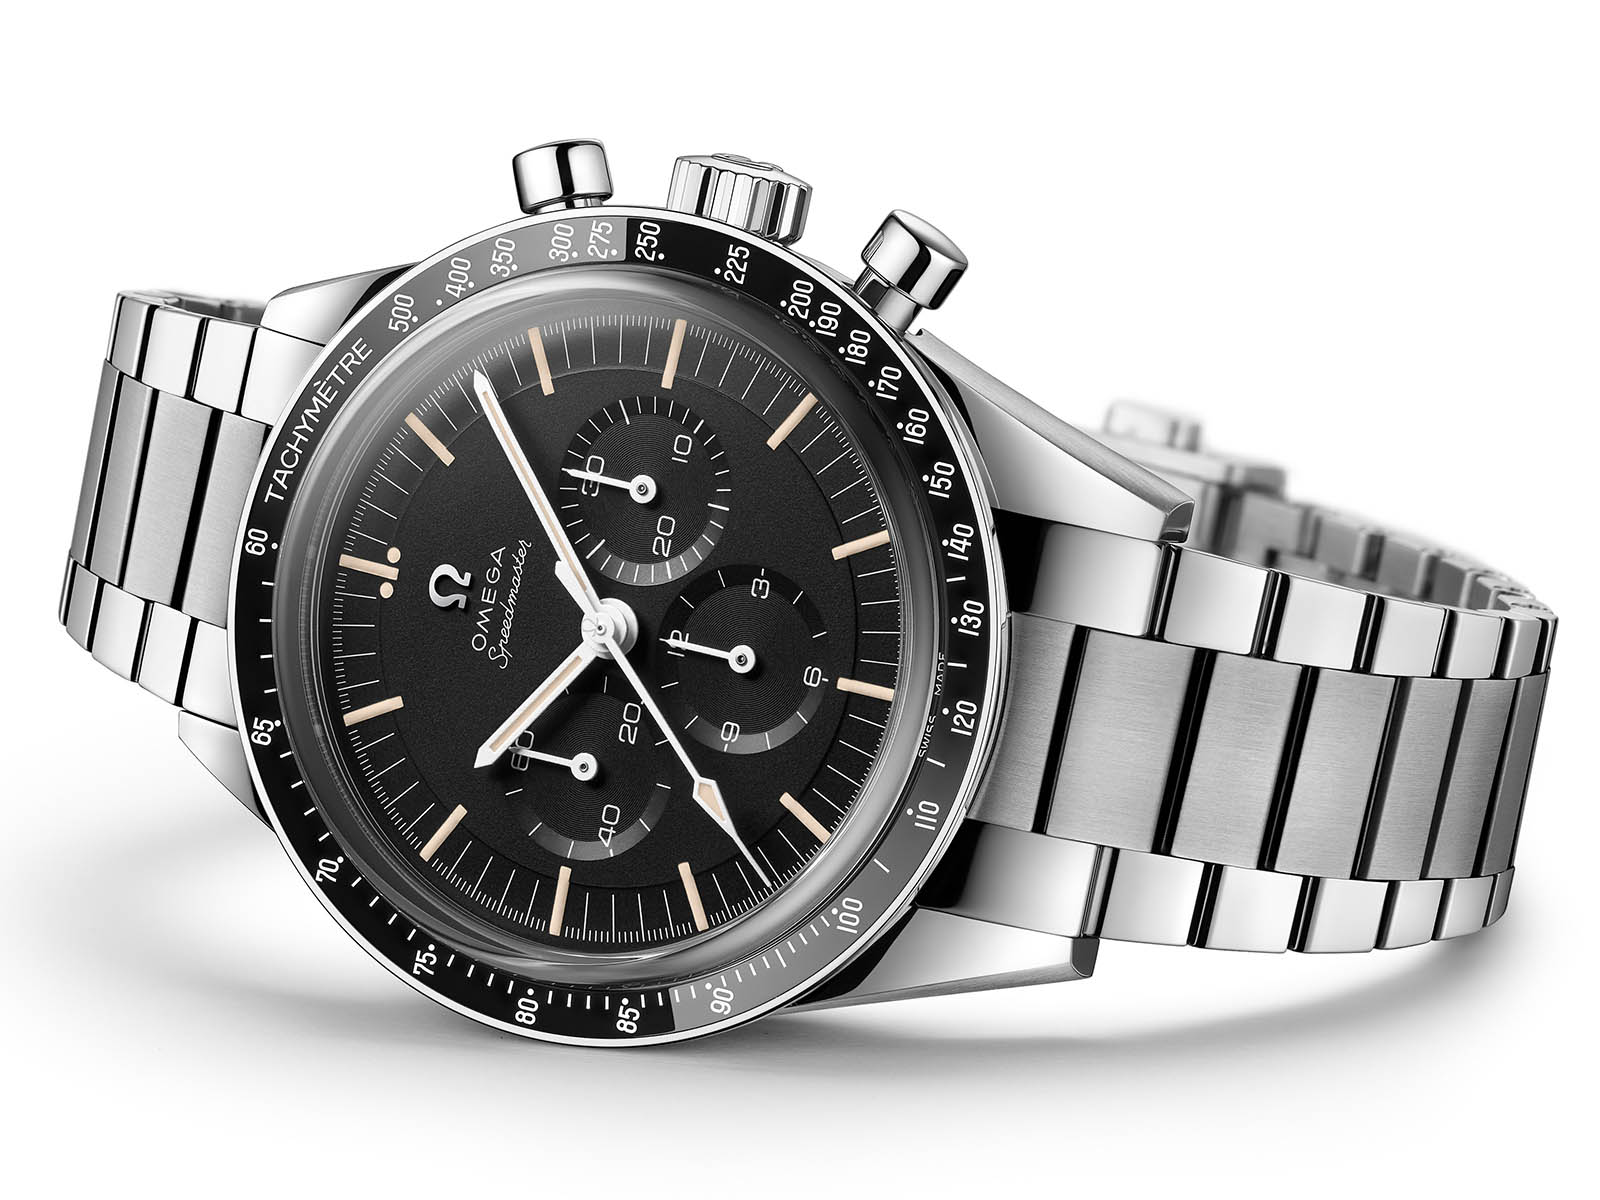 311-30-40-30-01-001-omega-speedmaster-moonwatch-chronograph-39-7-mm-1.jpg